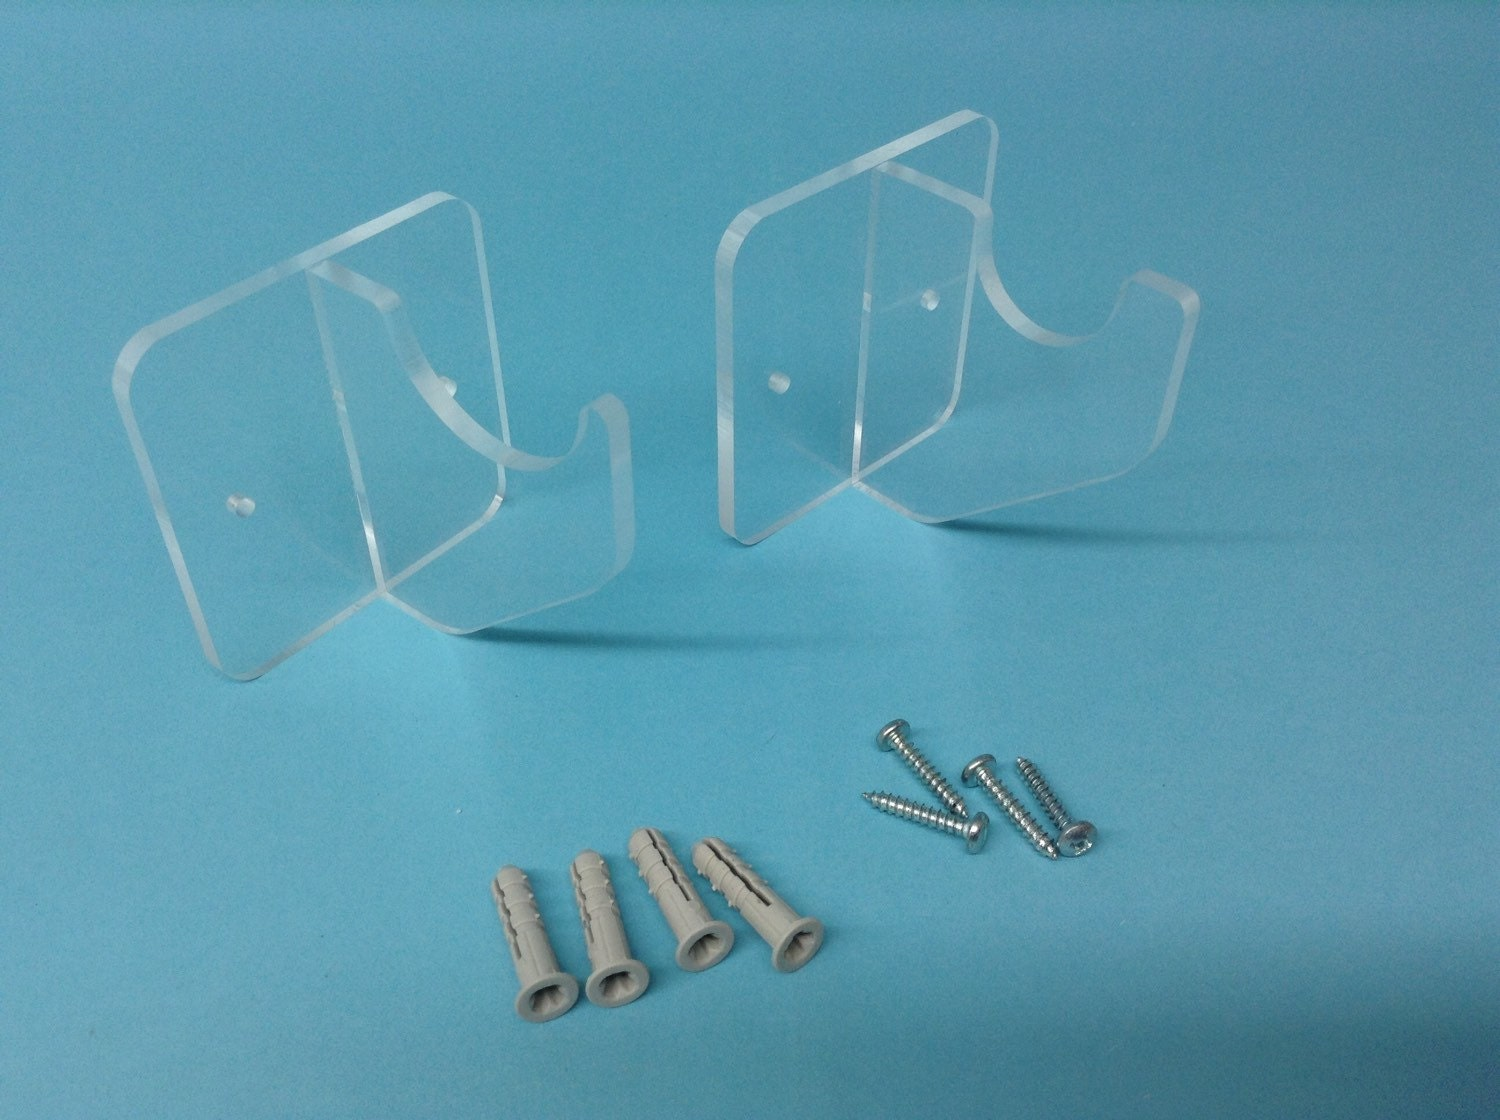 Lightsaber holder/horizontal wall mount/clear acrylic for